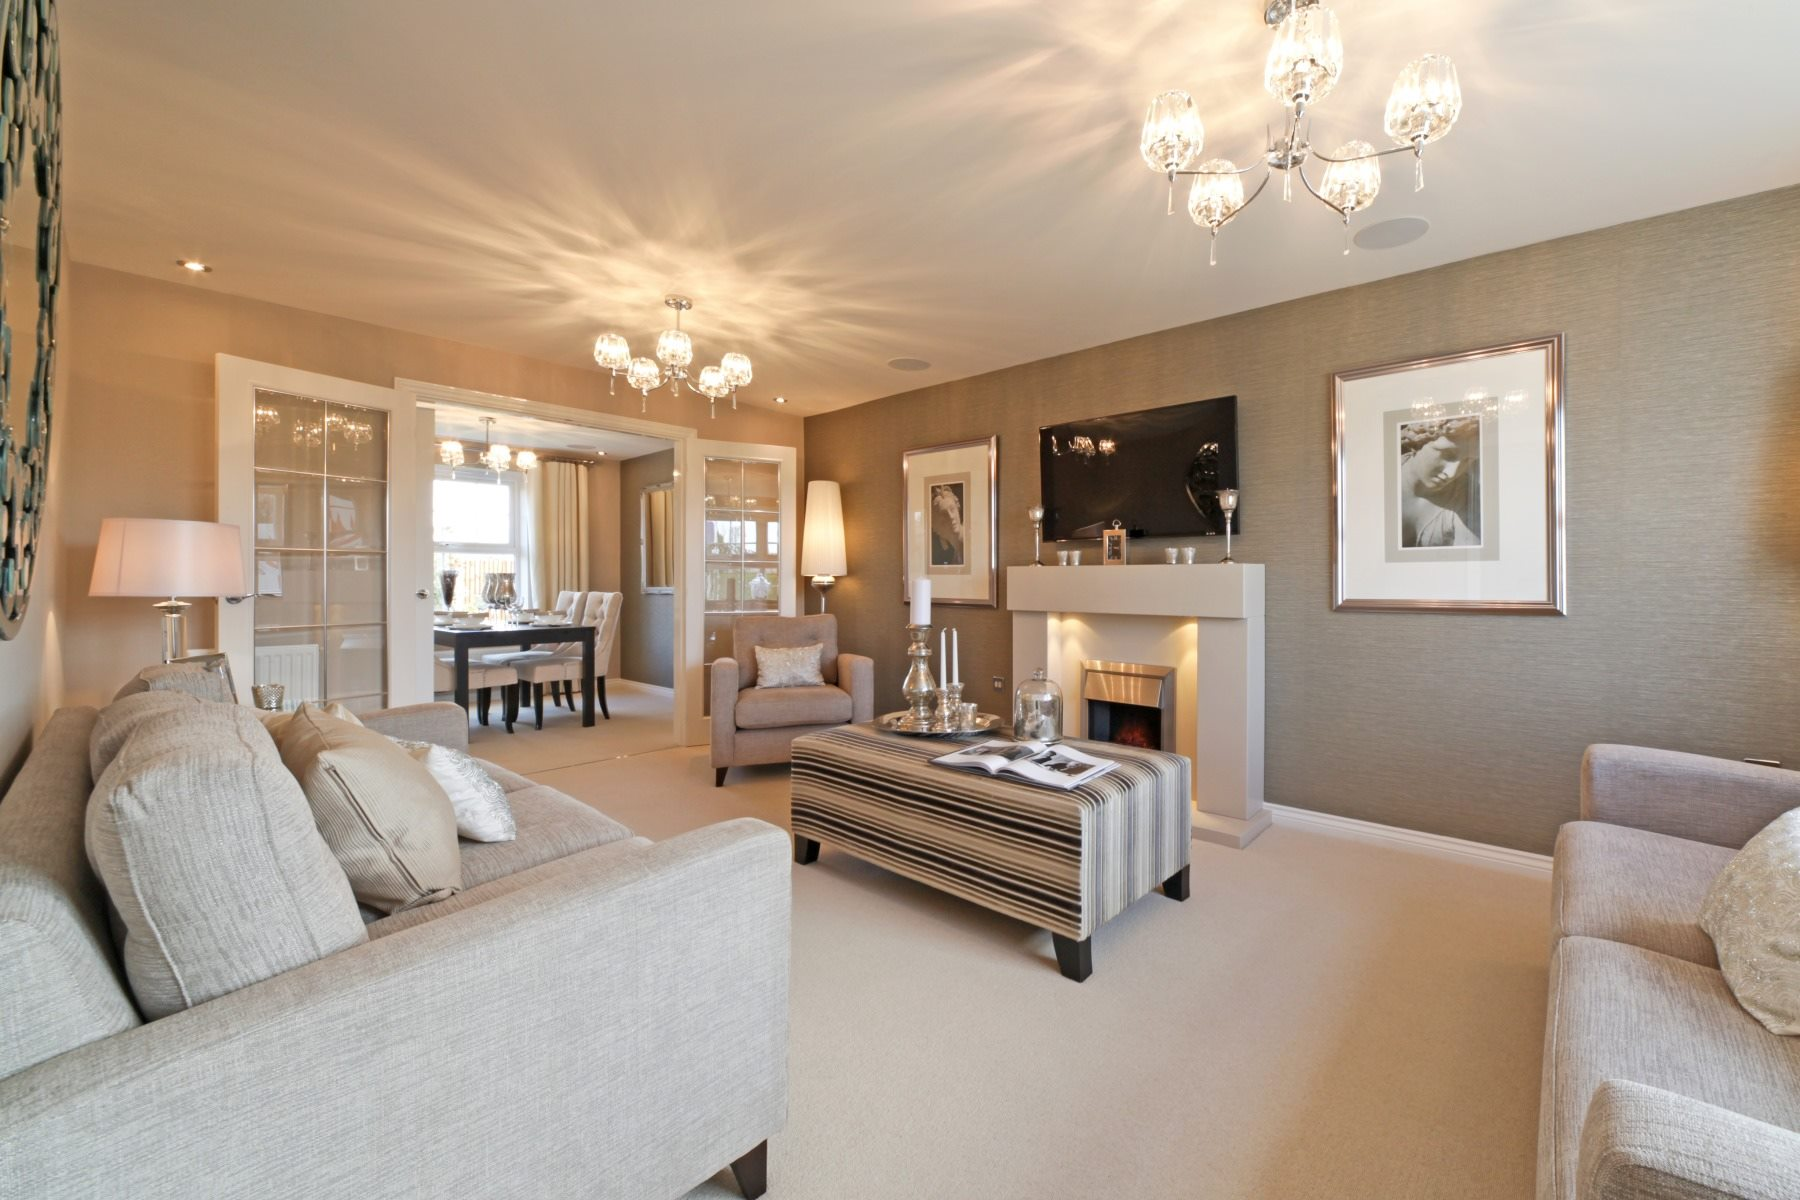 New homes in clitheroe taylor wimpey for Home decor uk